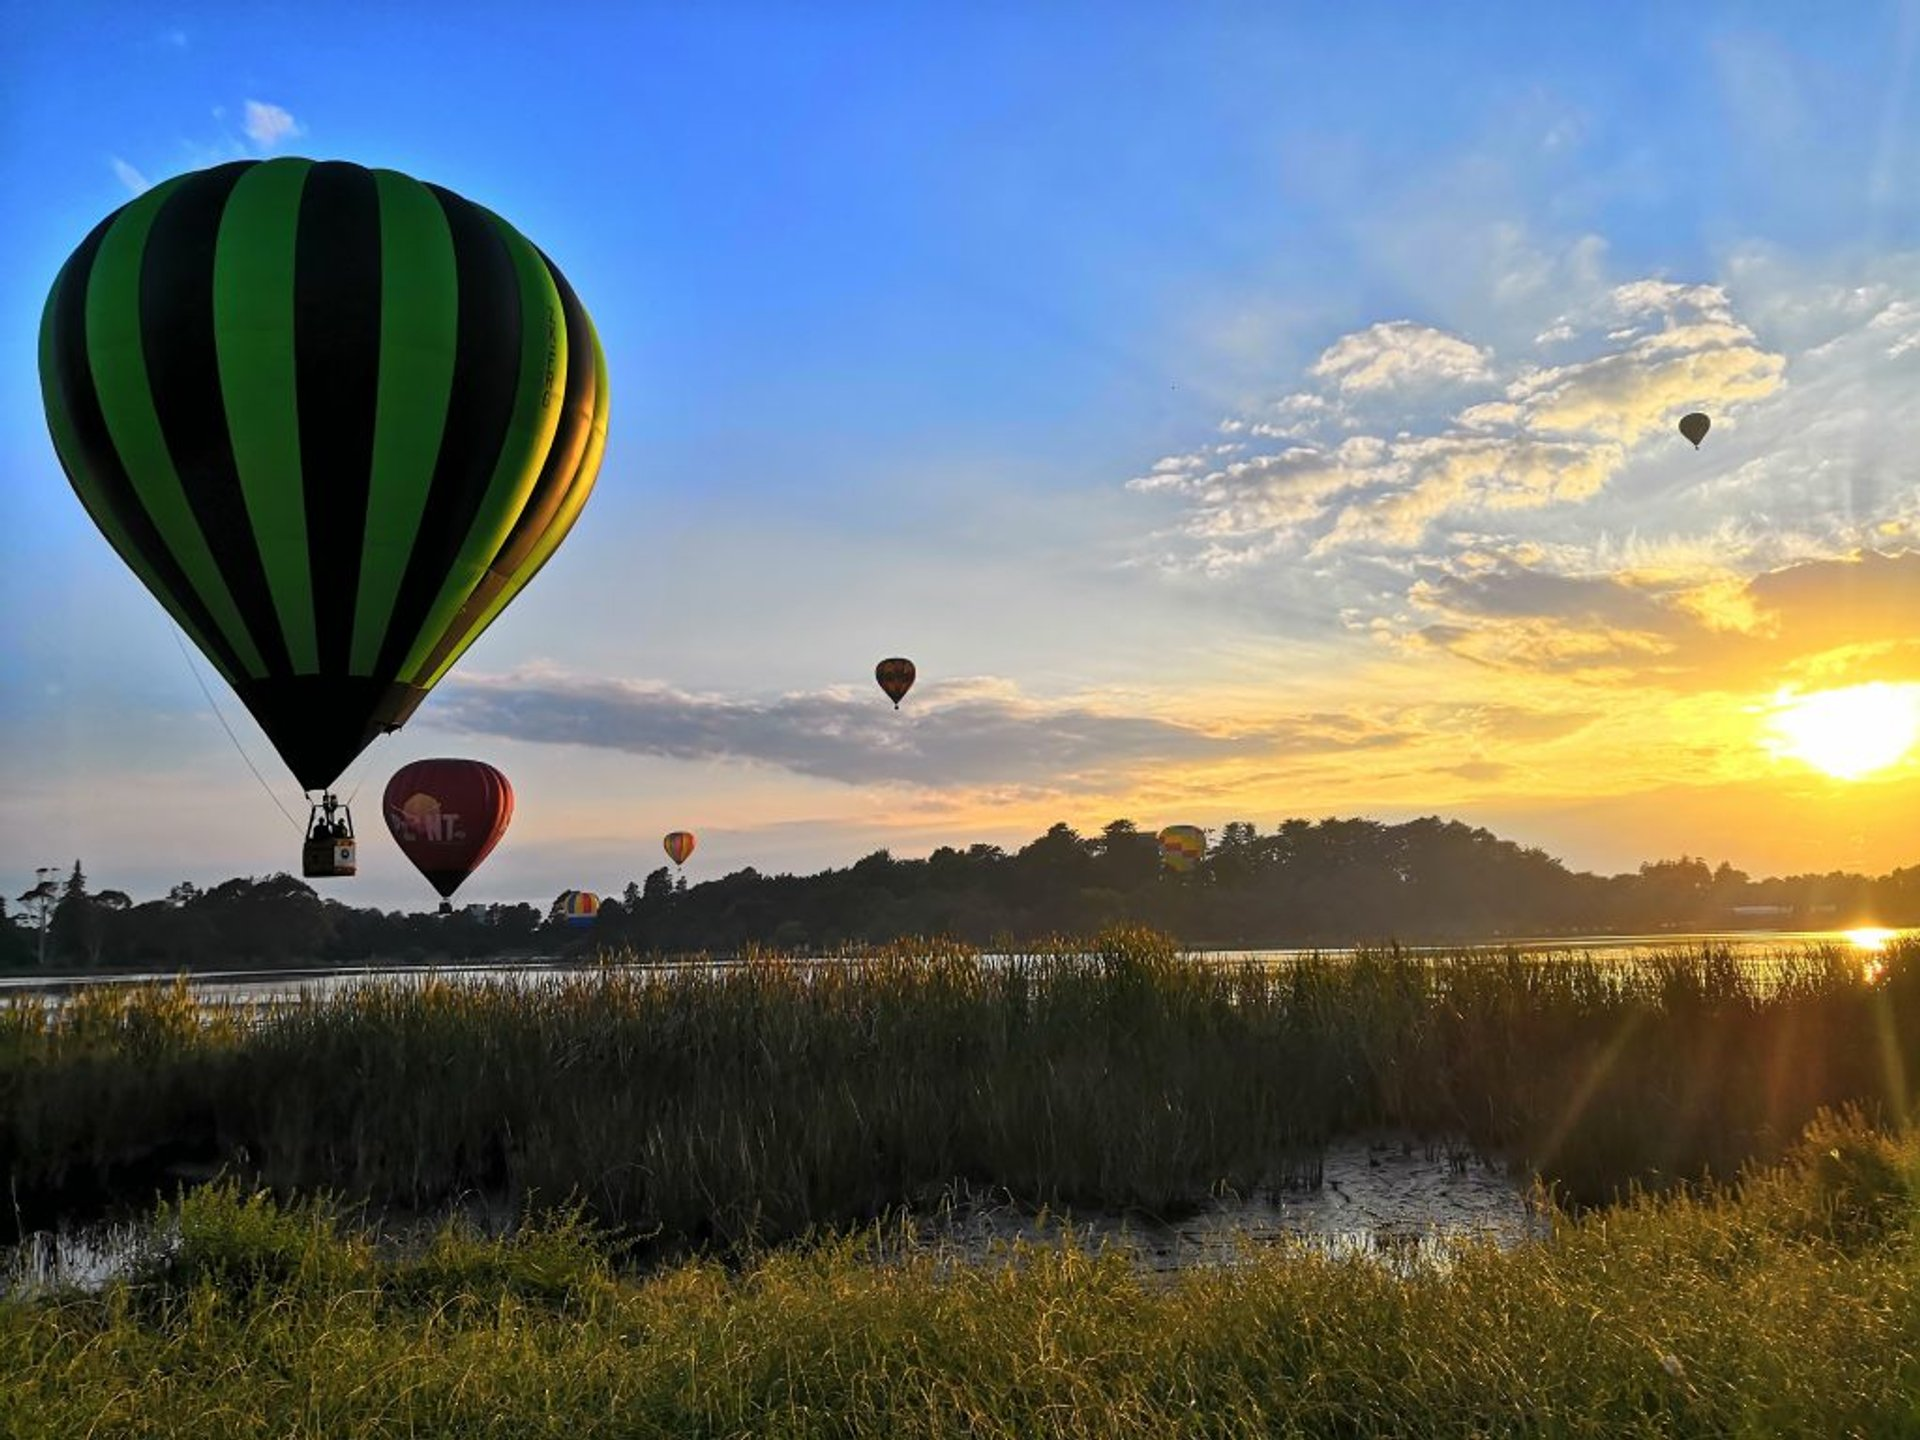 Best time to see Balloons over Waikato in New Zealand 2020